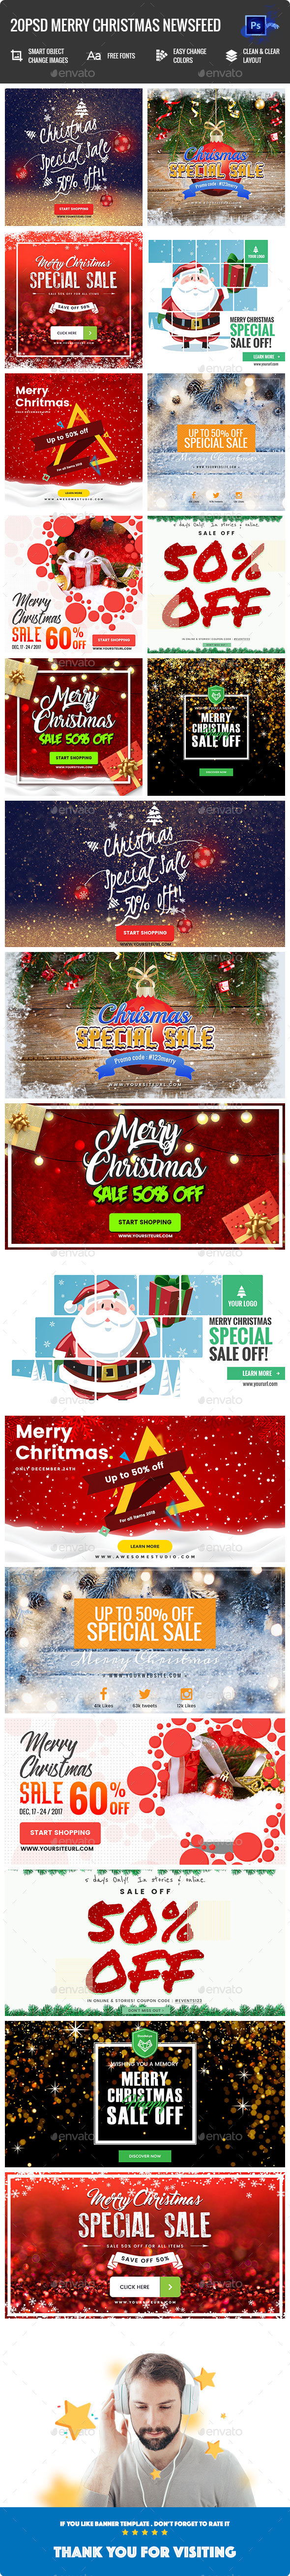 Merry Christmas NewsFeed Banners Ad - 20PSD - Banners & Ads Web Elements